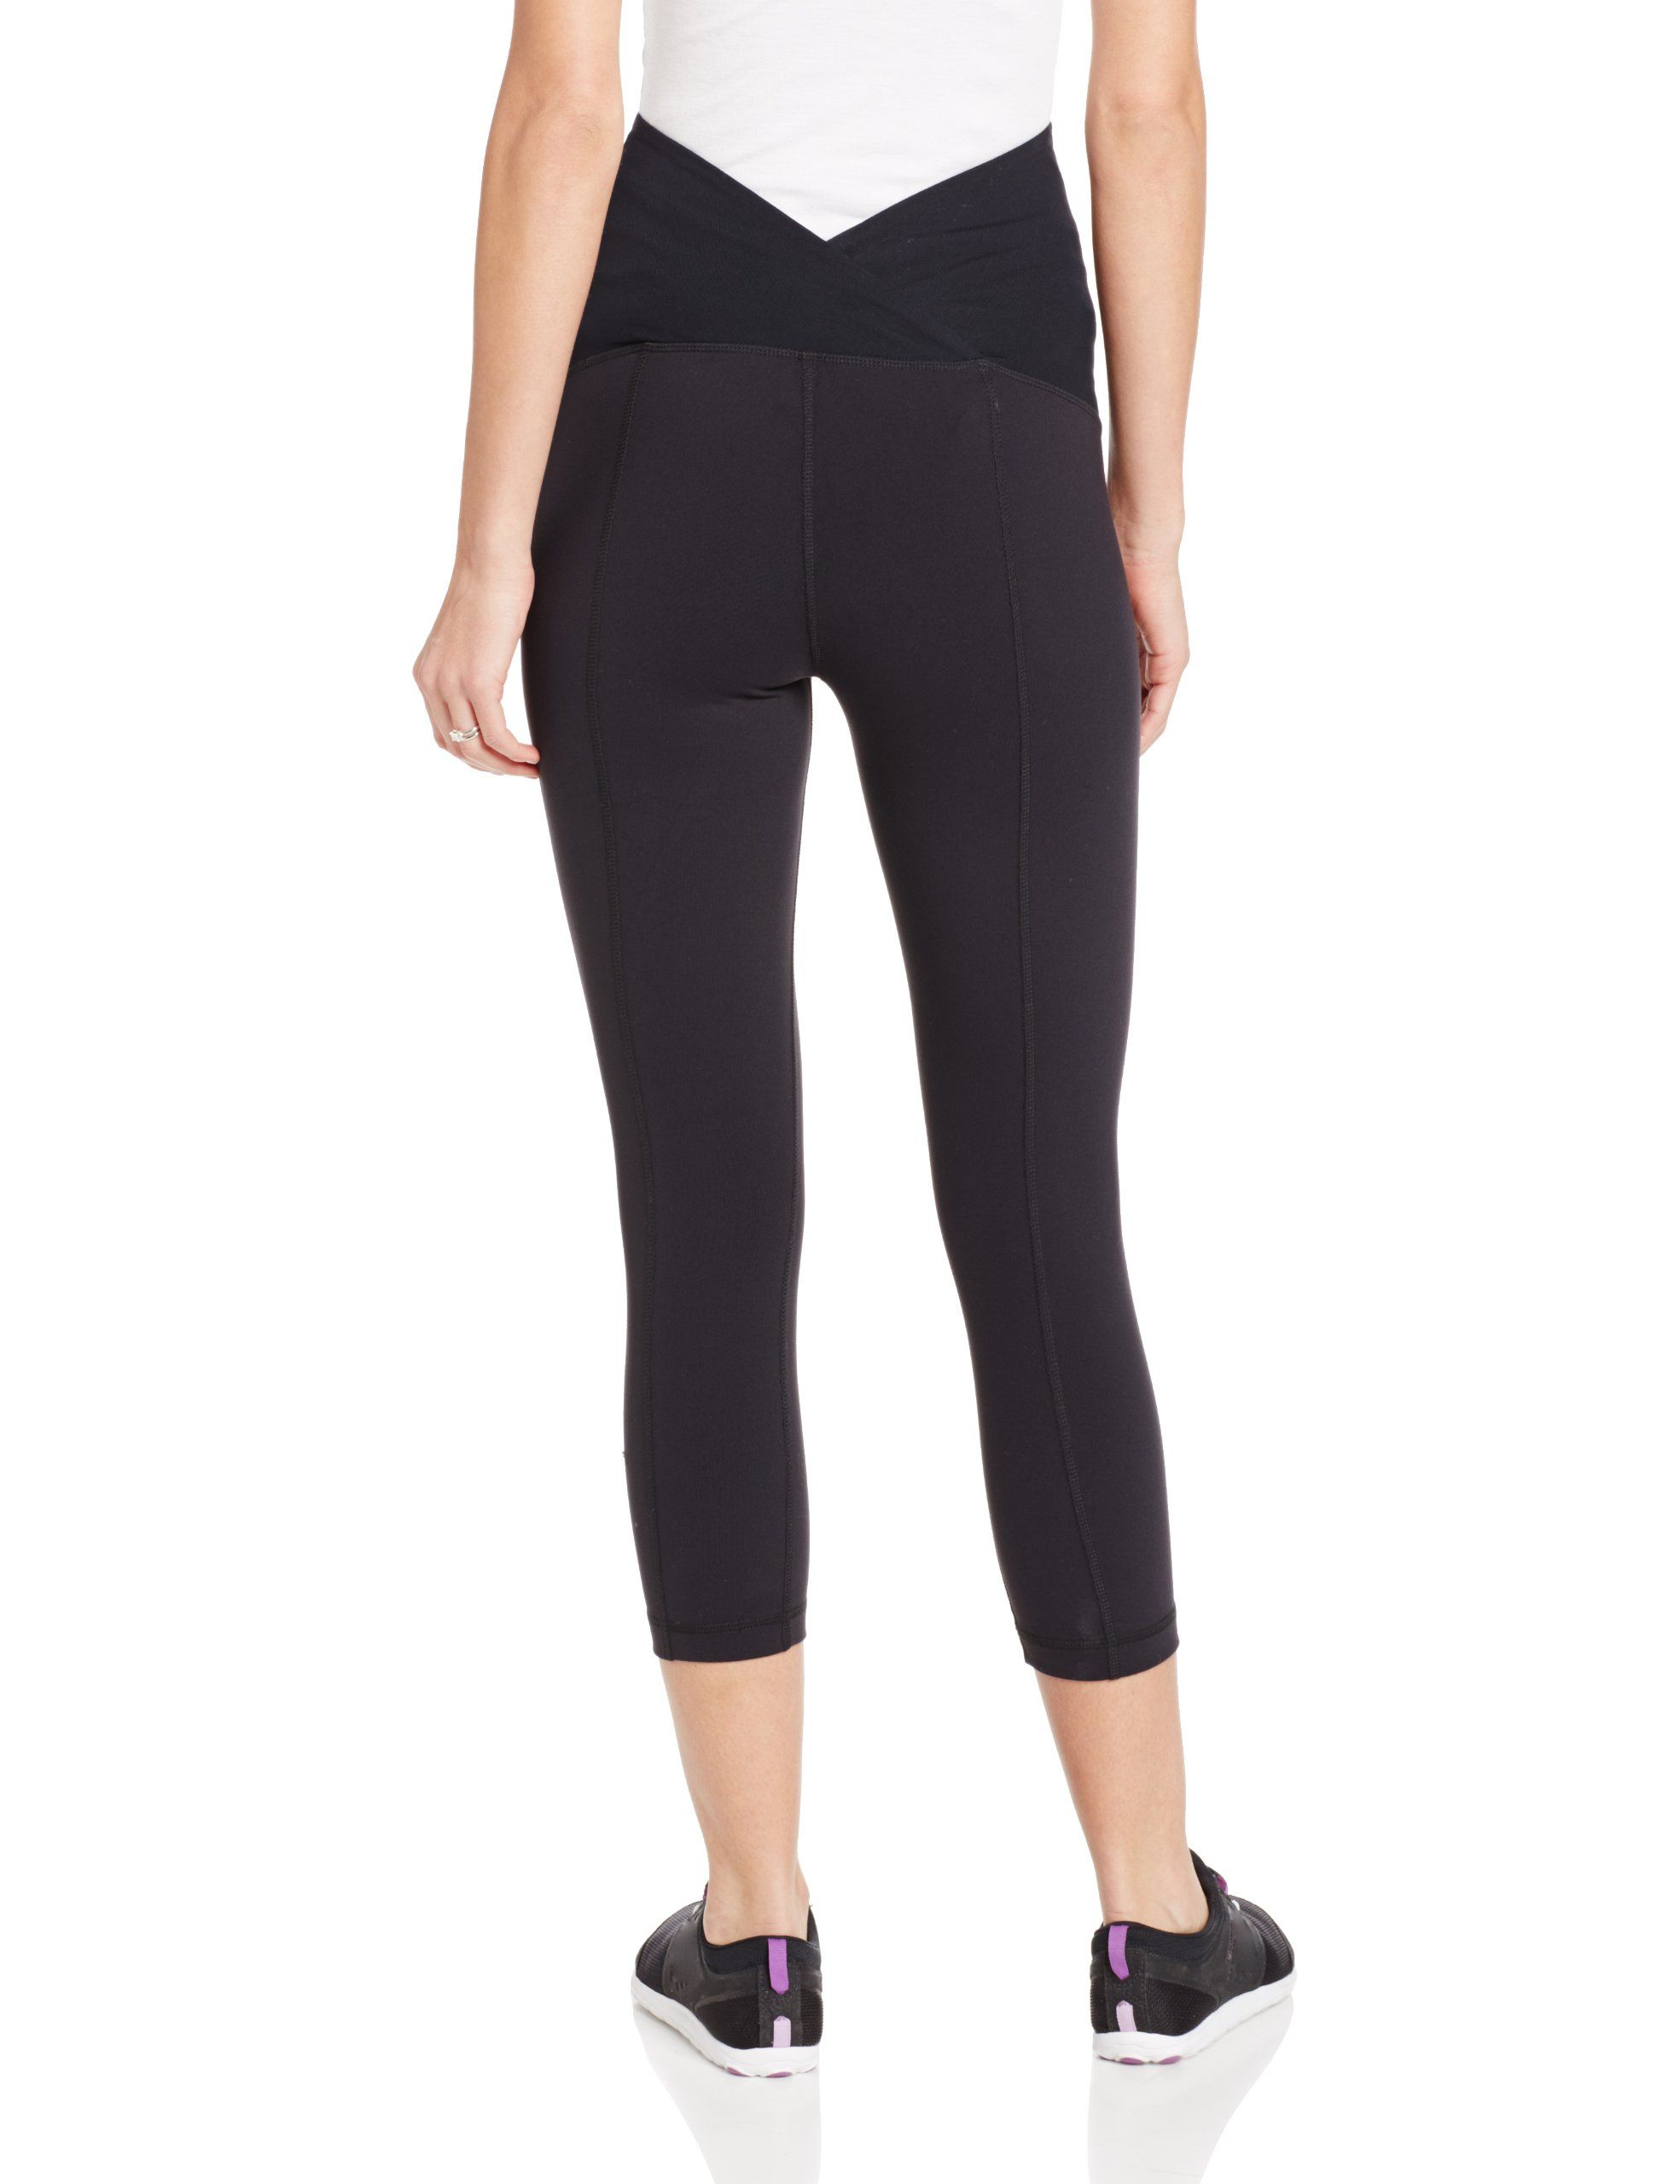 4f0664f32752f8 pregnancy workout - Ingrid and Isabel Womens Maternity Active Capri Pant  with Crossover Panel Jet Black Medium ** For more details, see picture link.